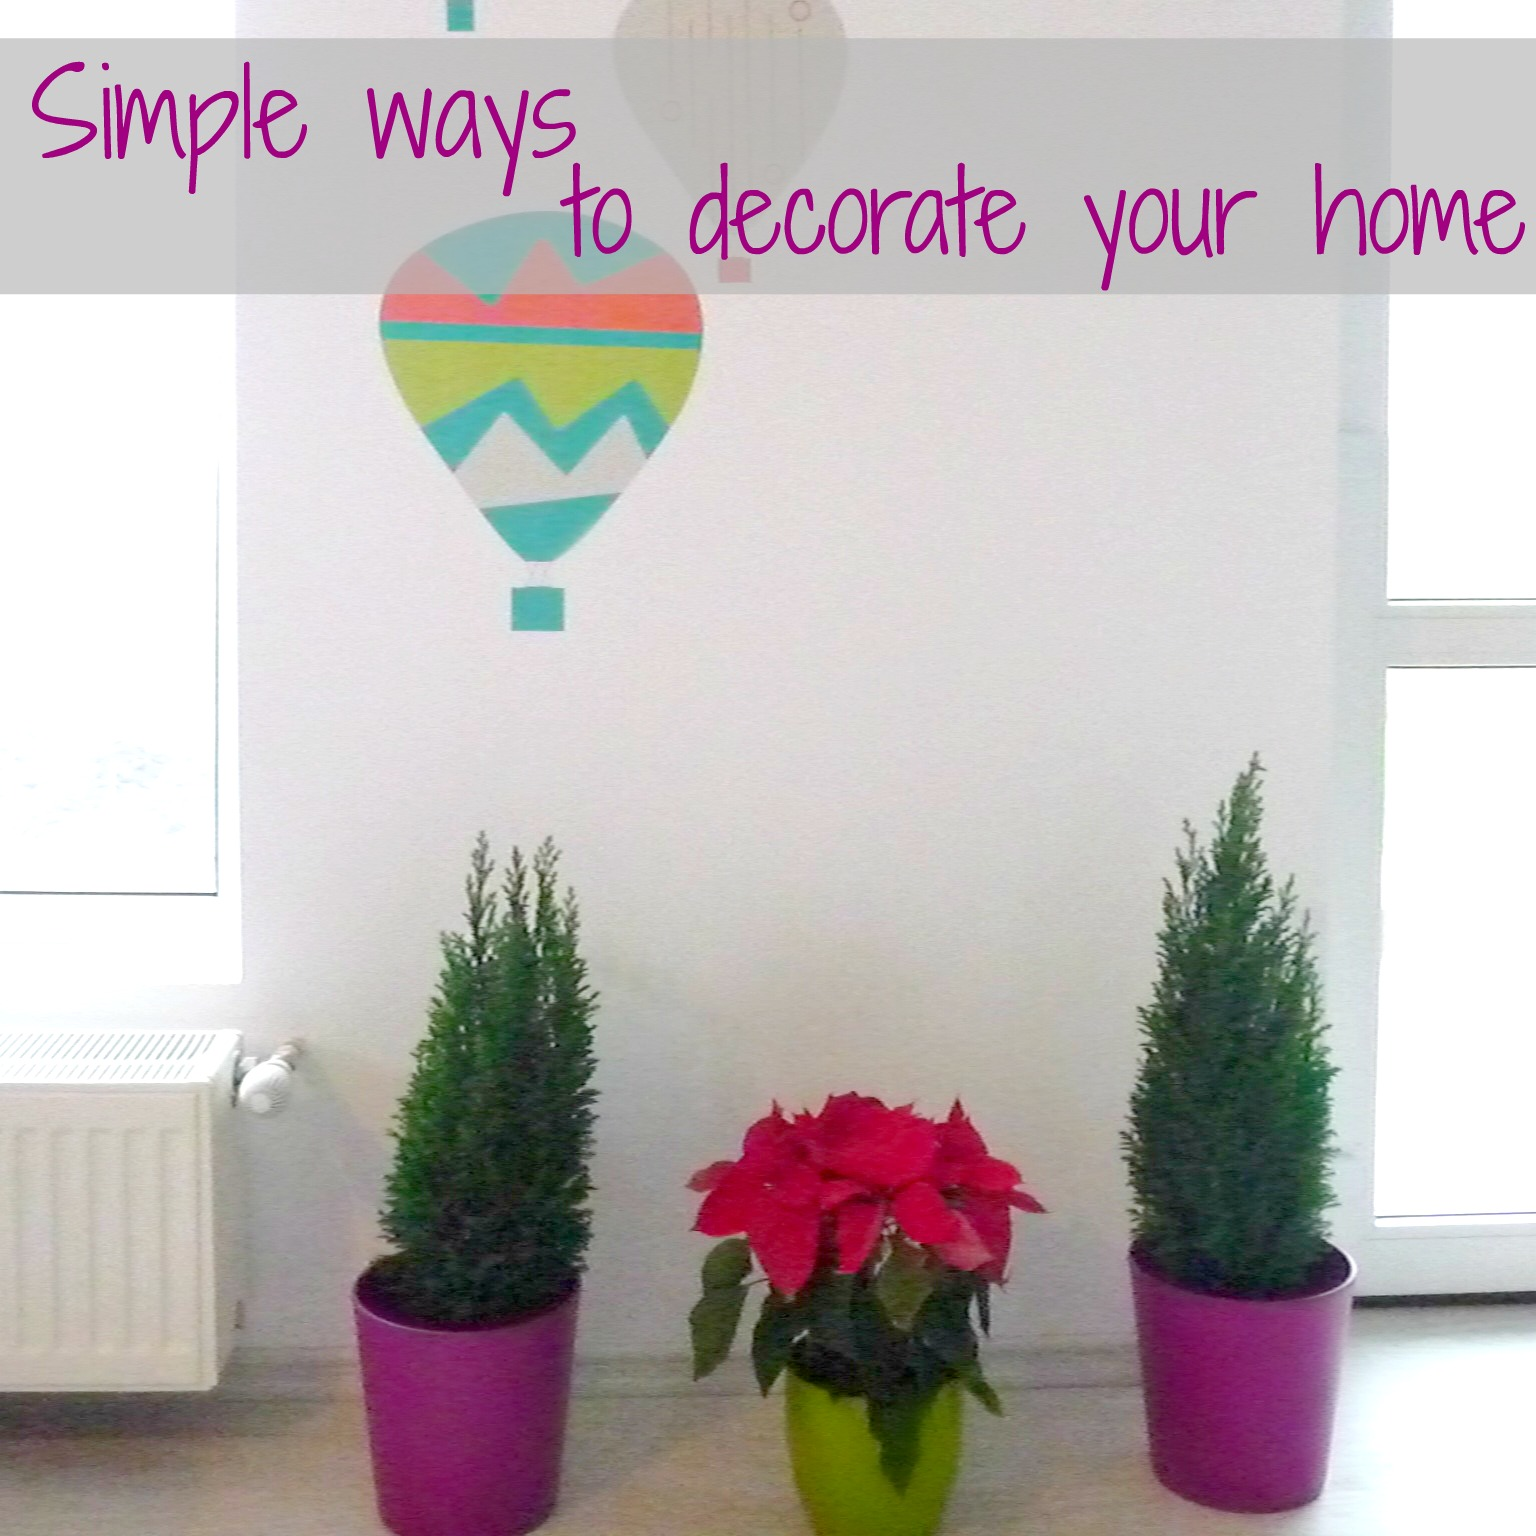 Simple ways to decorate your home for Hire someone to decorate my house